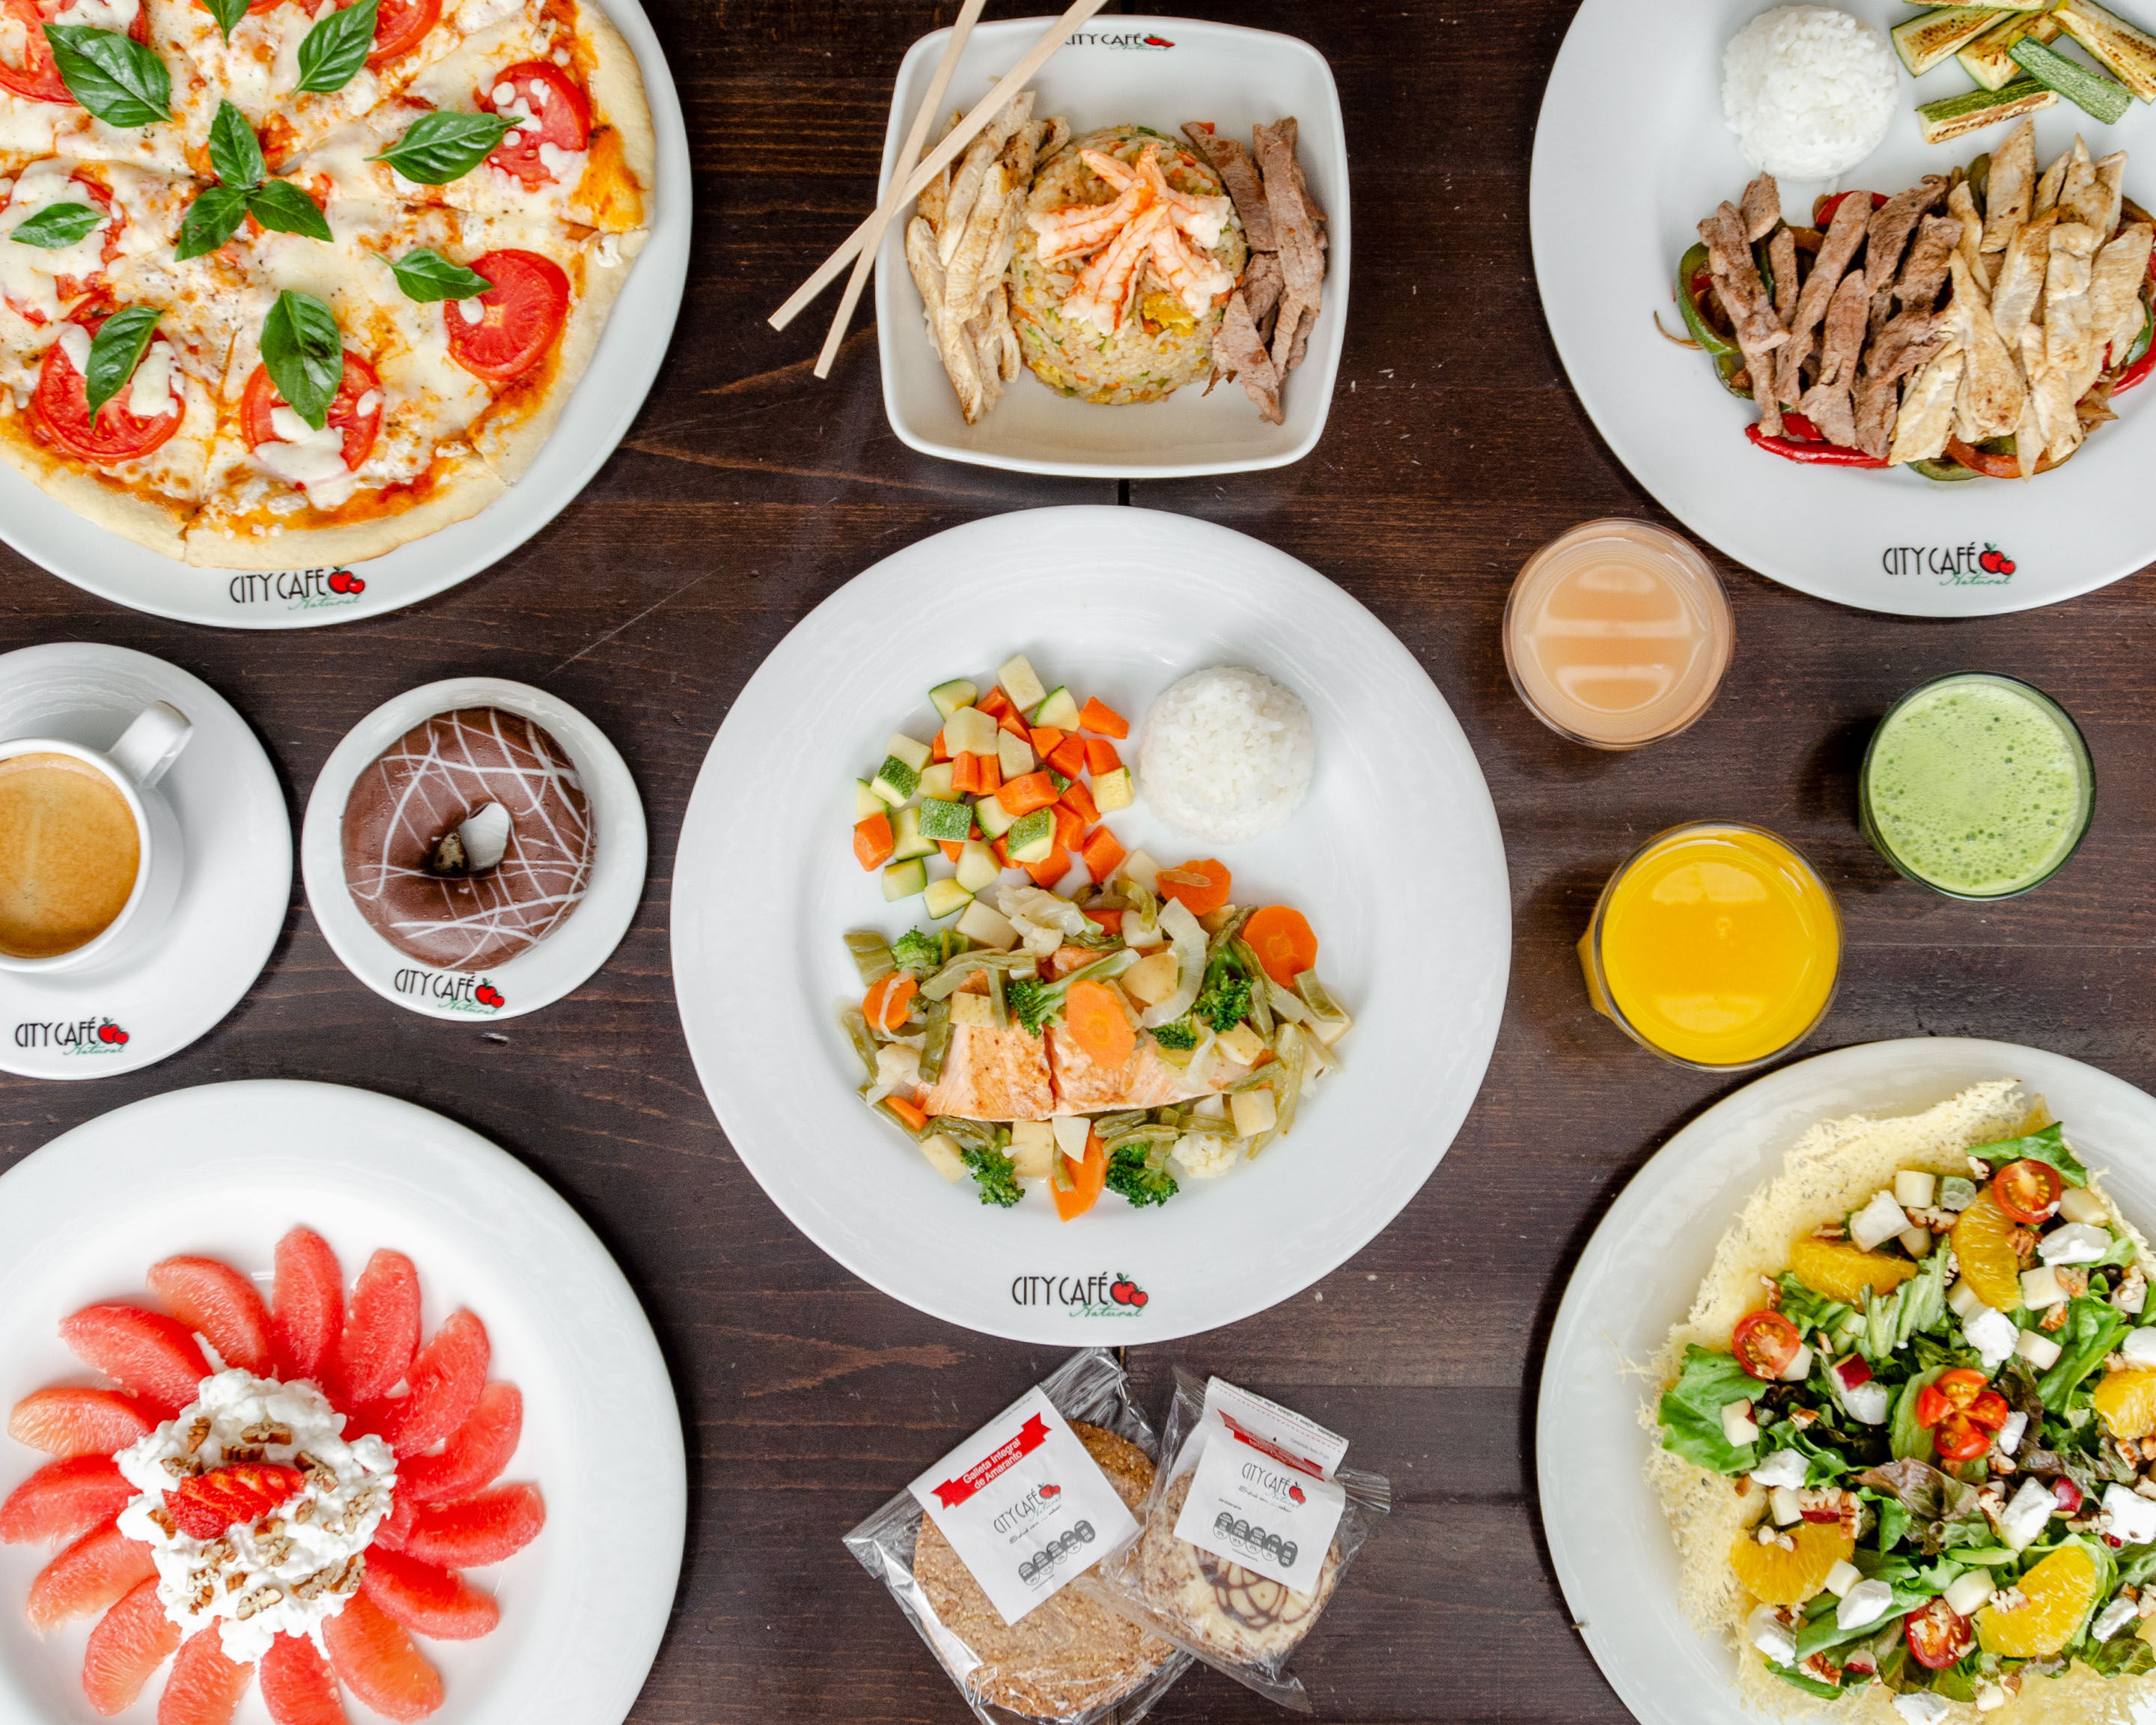 City Café Carso Delivery In Mexico City Menu Prices Uber Eats